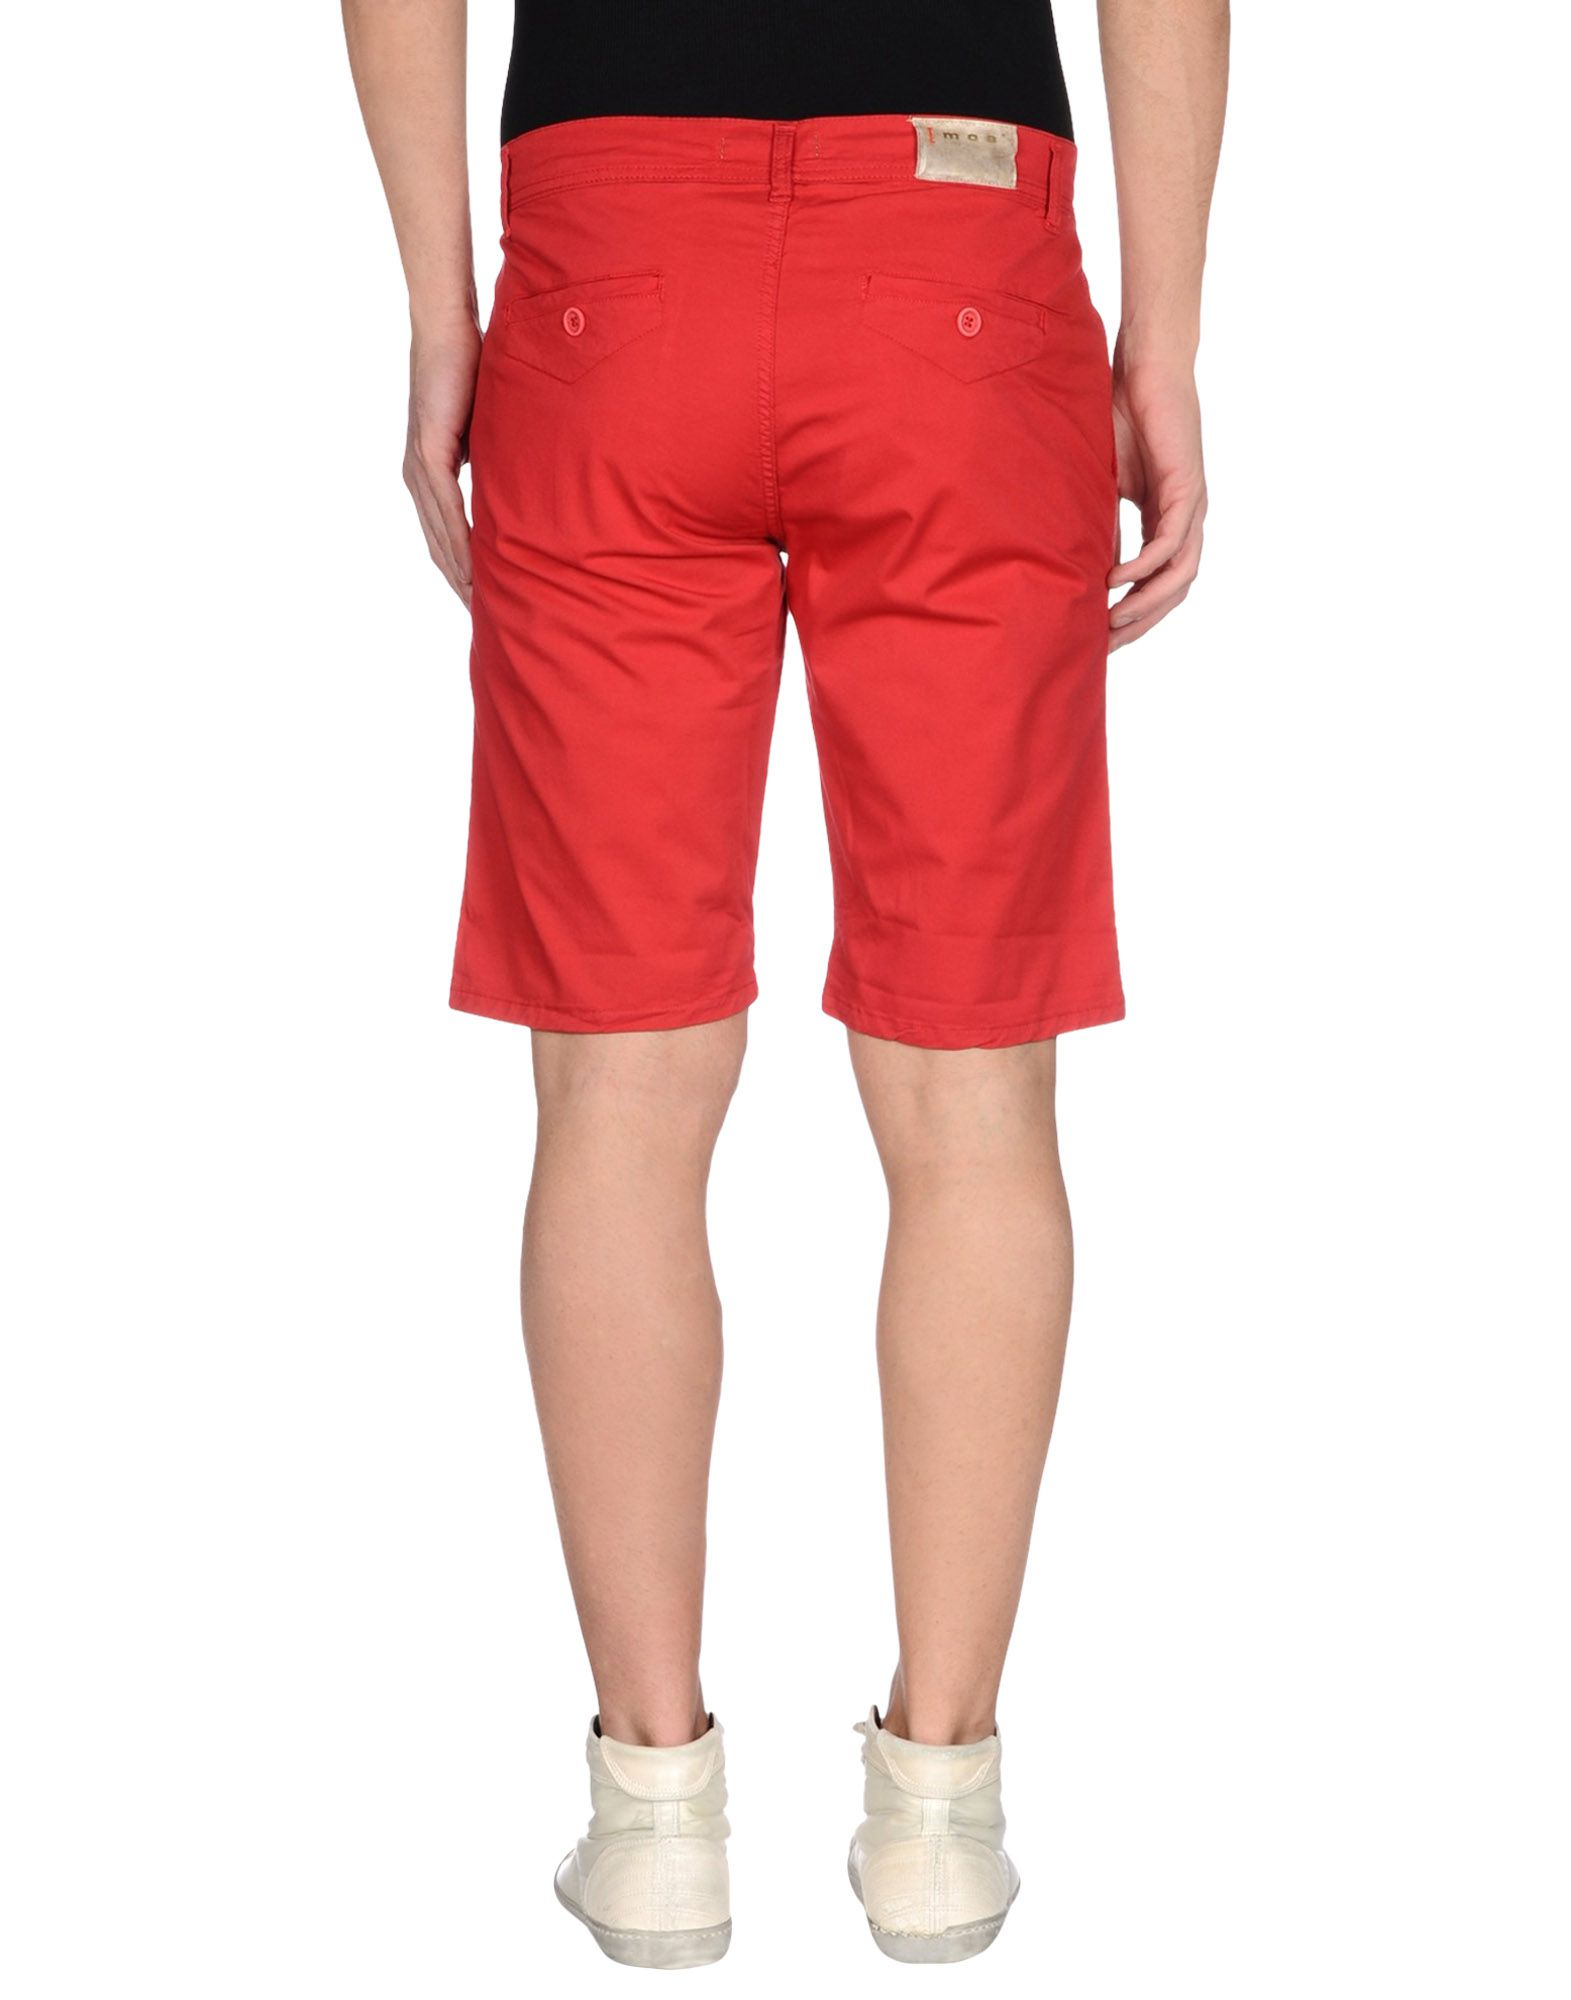 TROUSERS - Bermuda shorts Moa Cashmere Technology y80rXa8e